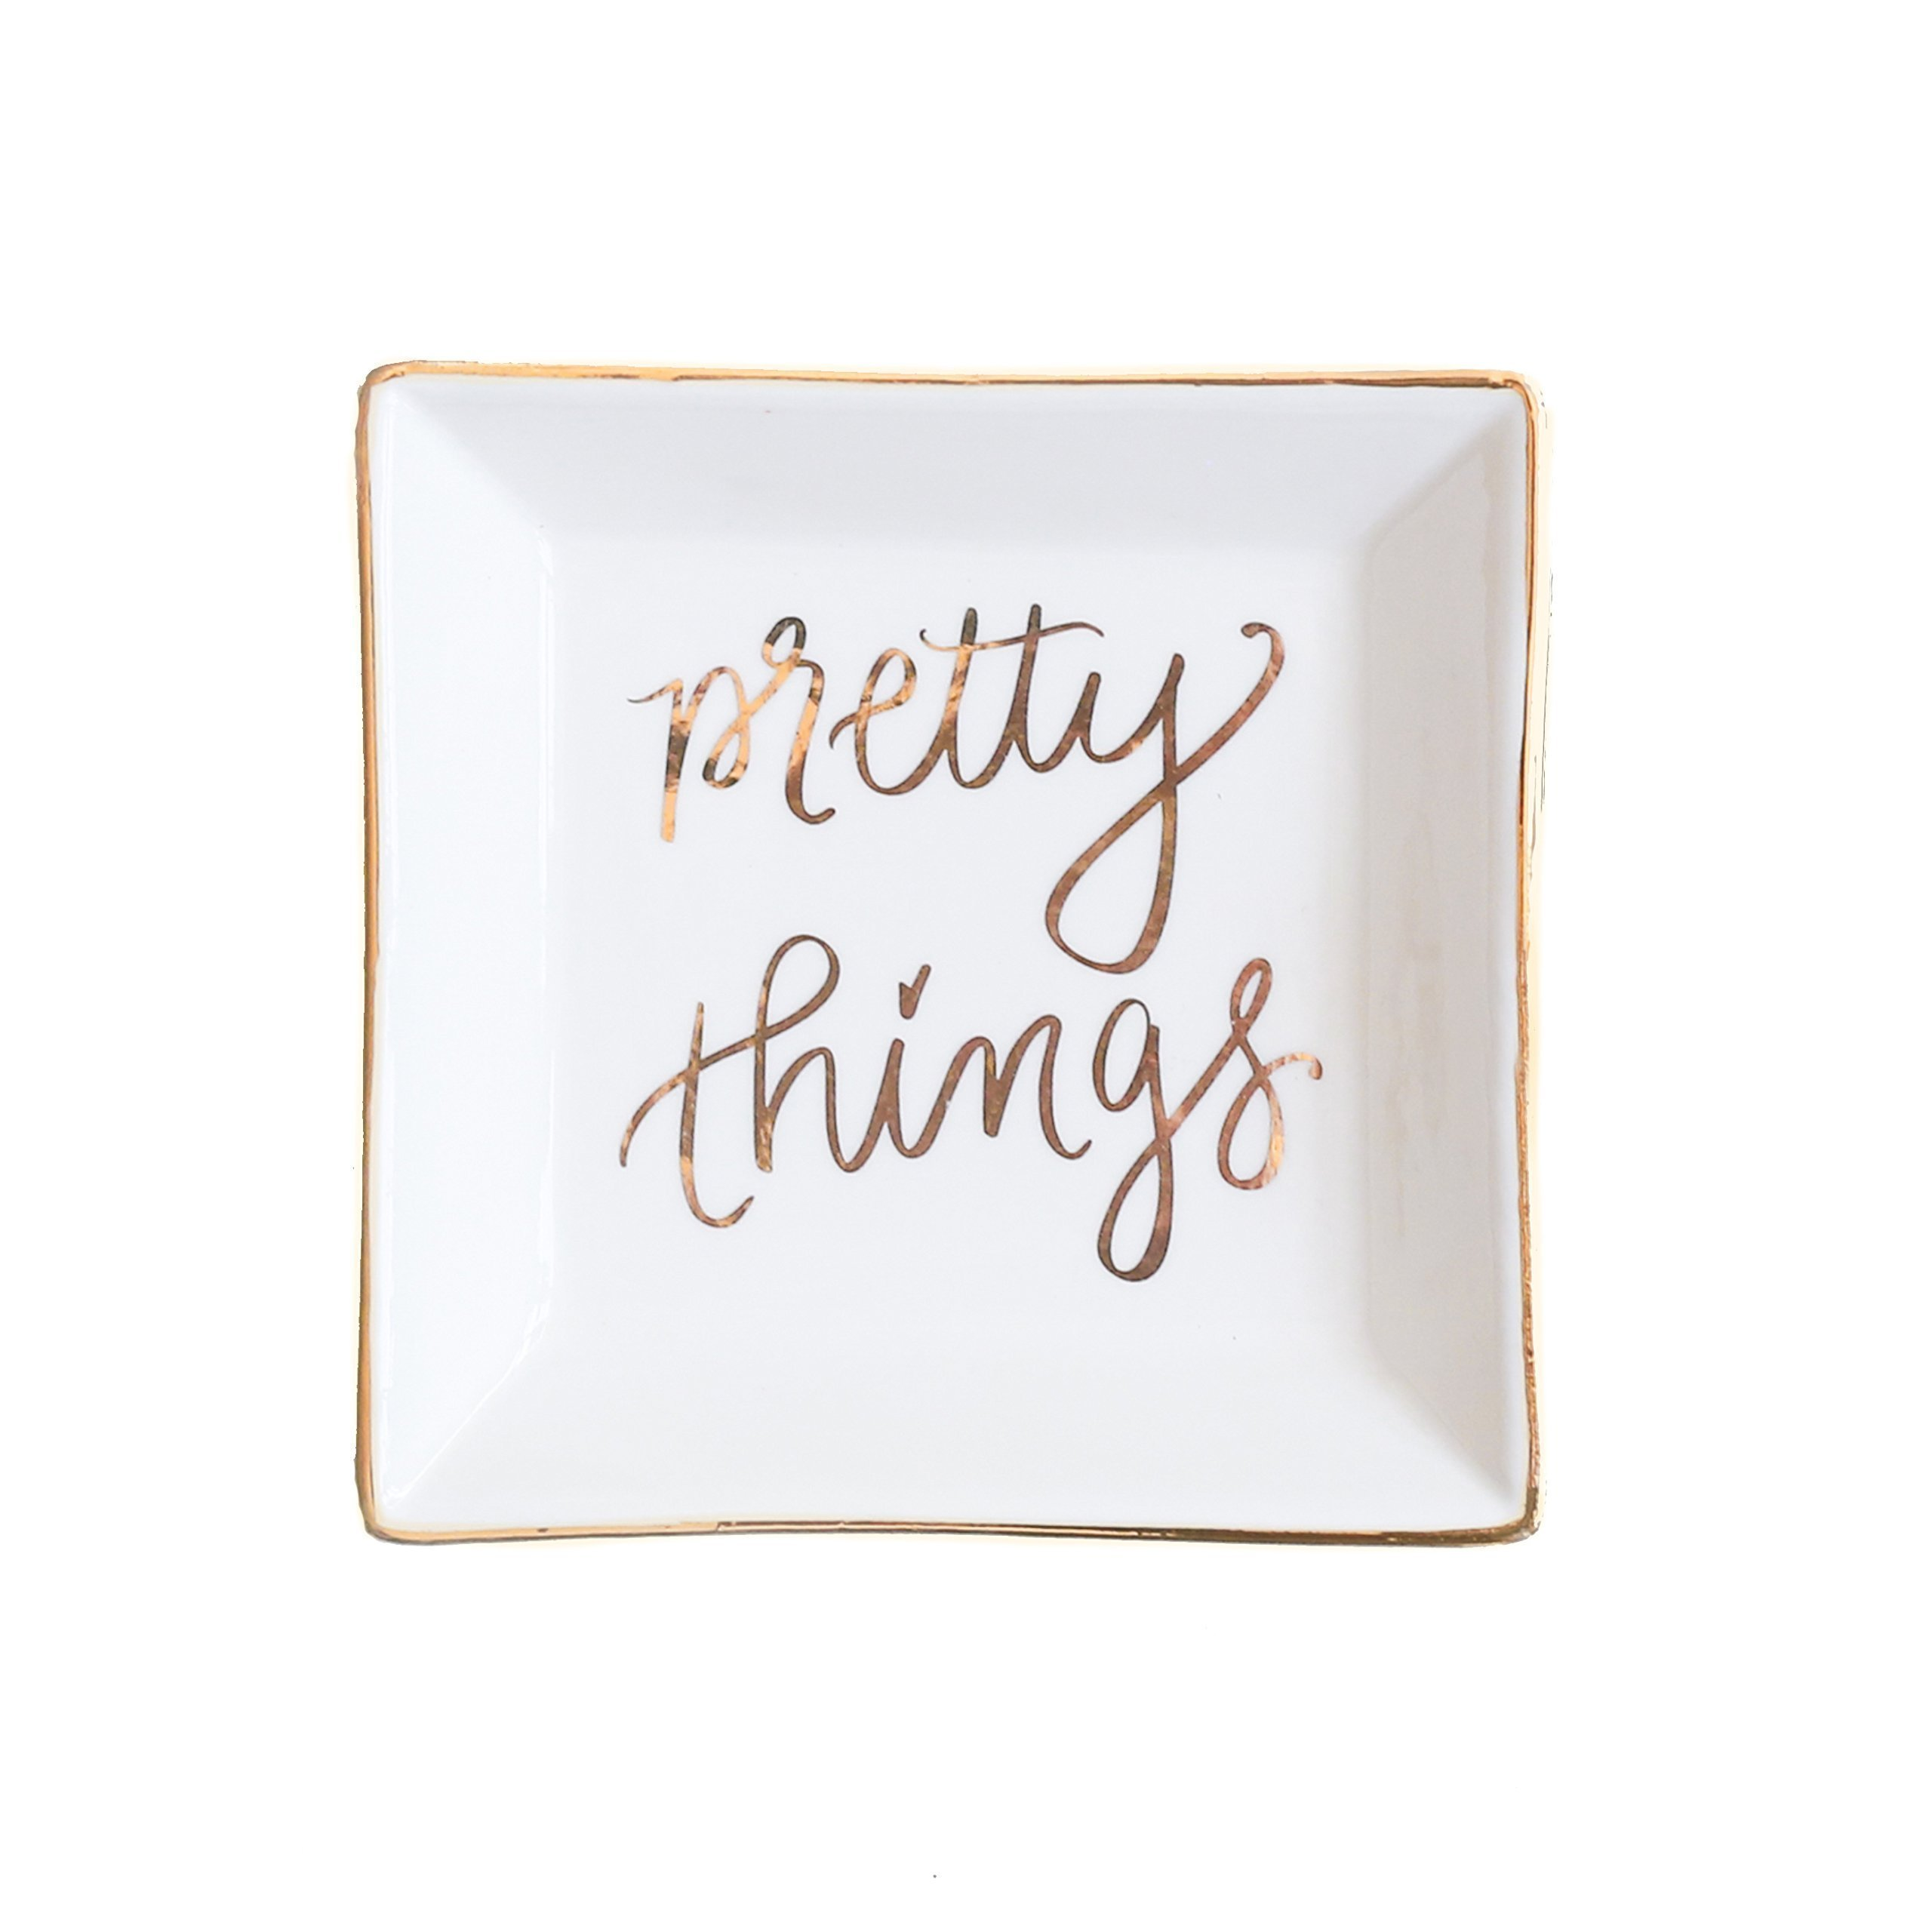 Pretty Things Jewelry Dish |Small Gold Ring Trinket Tray Storage Inspirational Best Friend Gift for Her Ceramic Organizer Office Decor Desk Accessories Hand Lettered